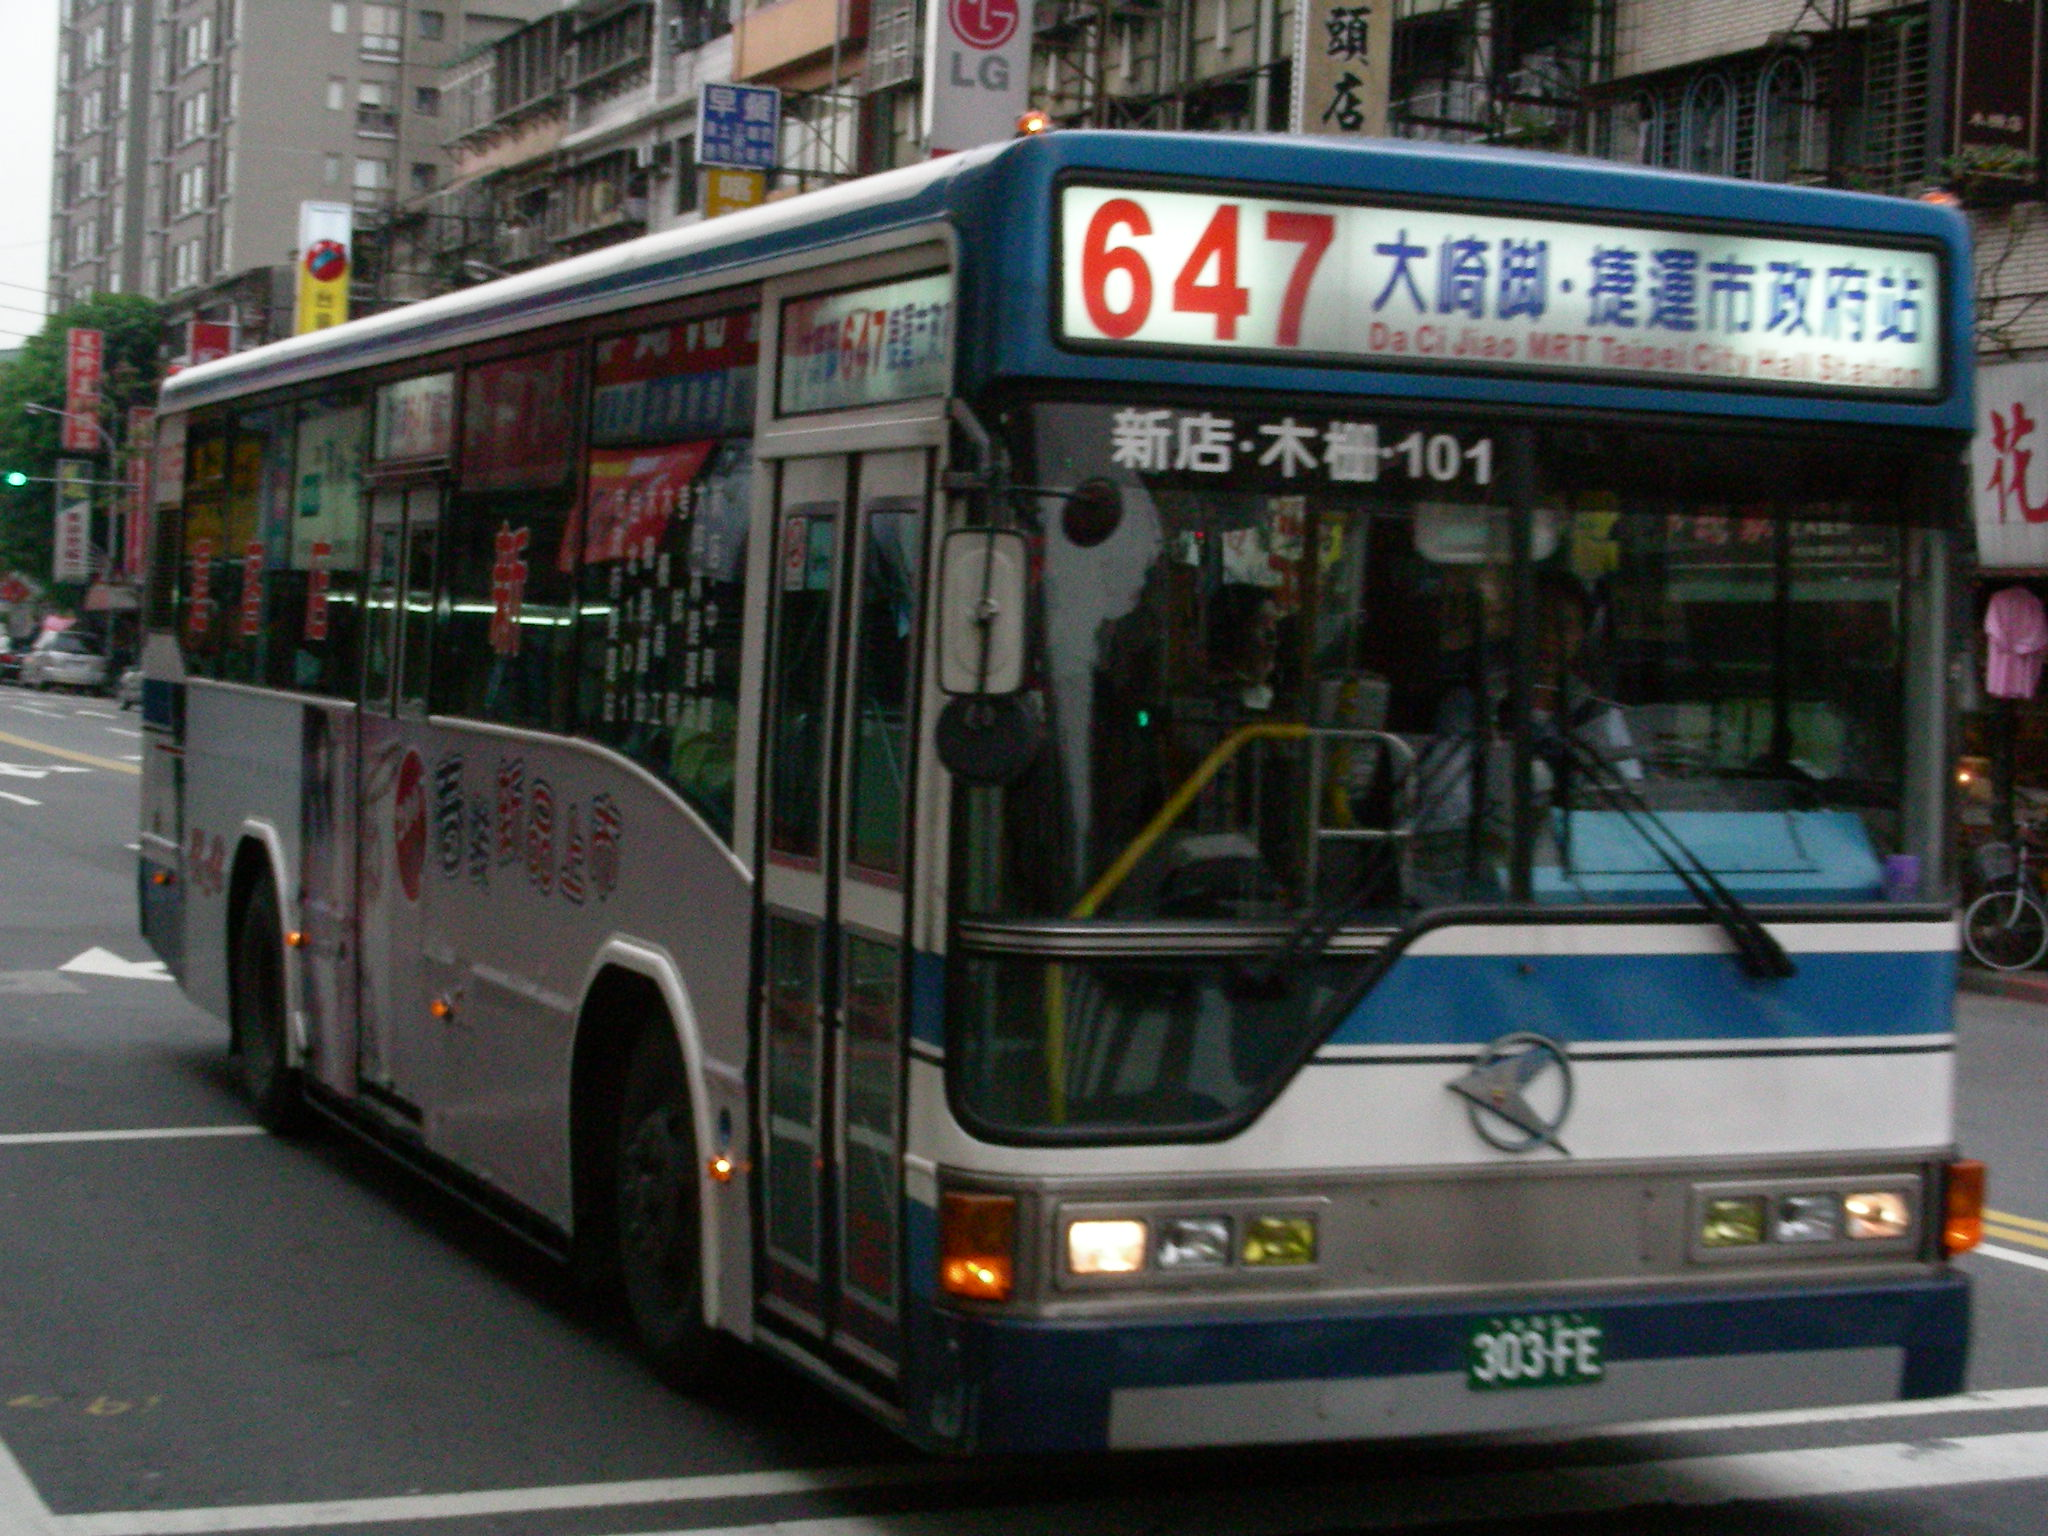 File:Xindian bus route 647.jpg